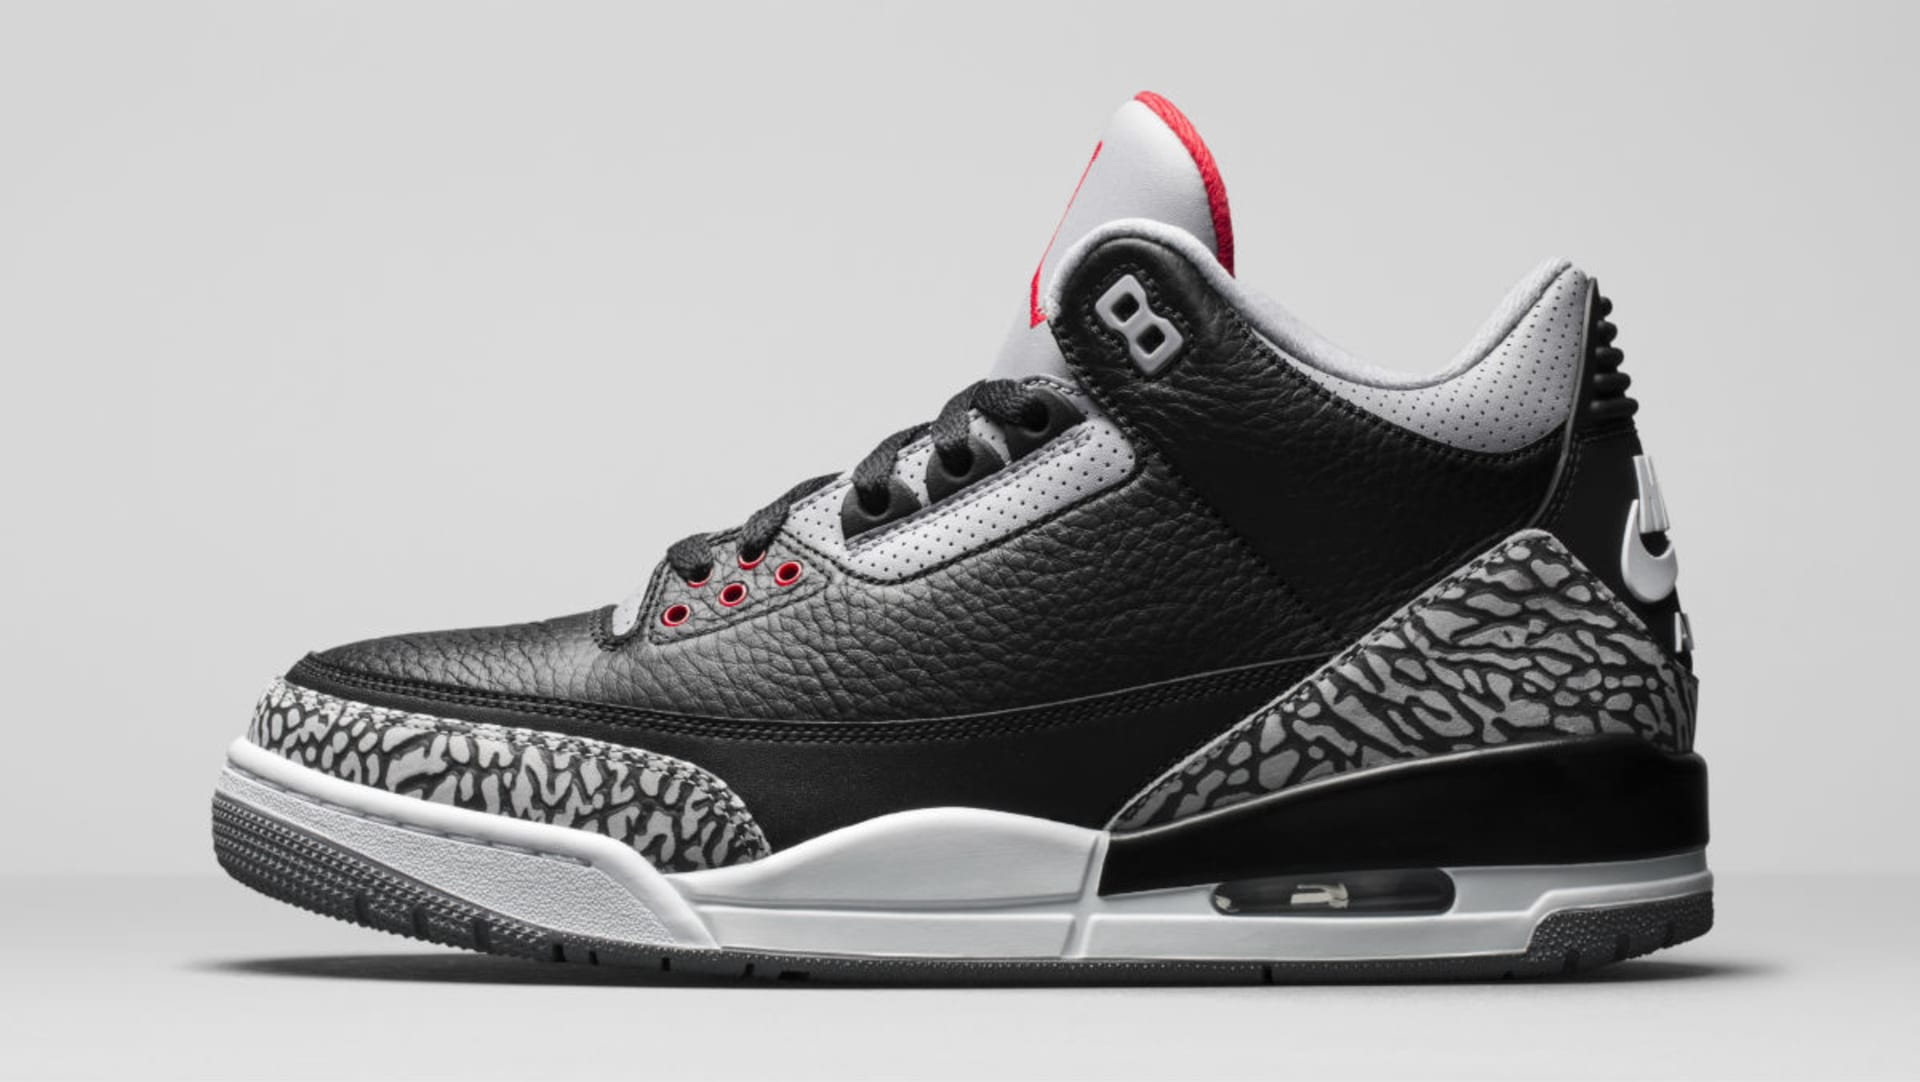 a1c31d715ba Air Jordan 3 III Black Cement Release Date 854262-001 Profile